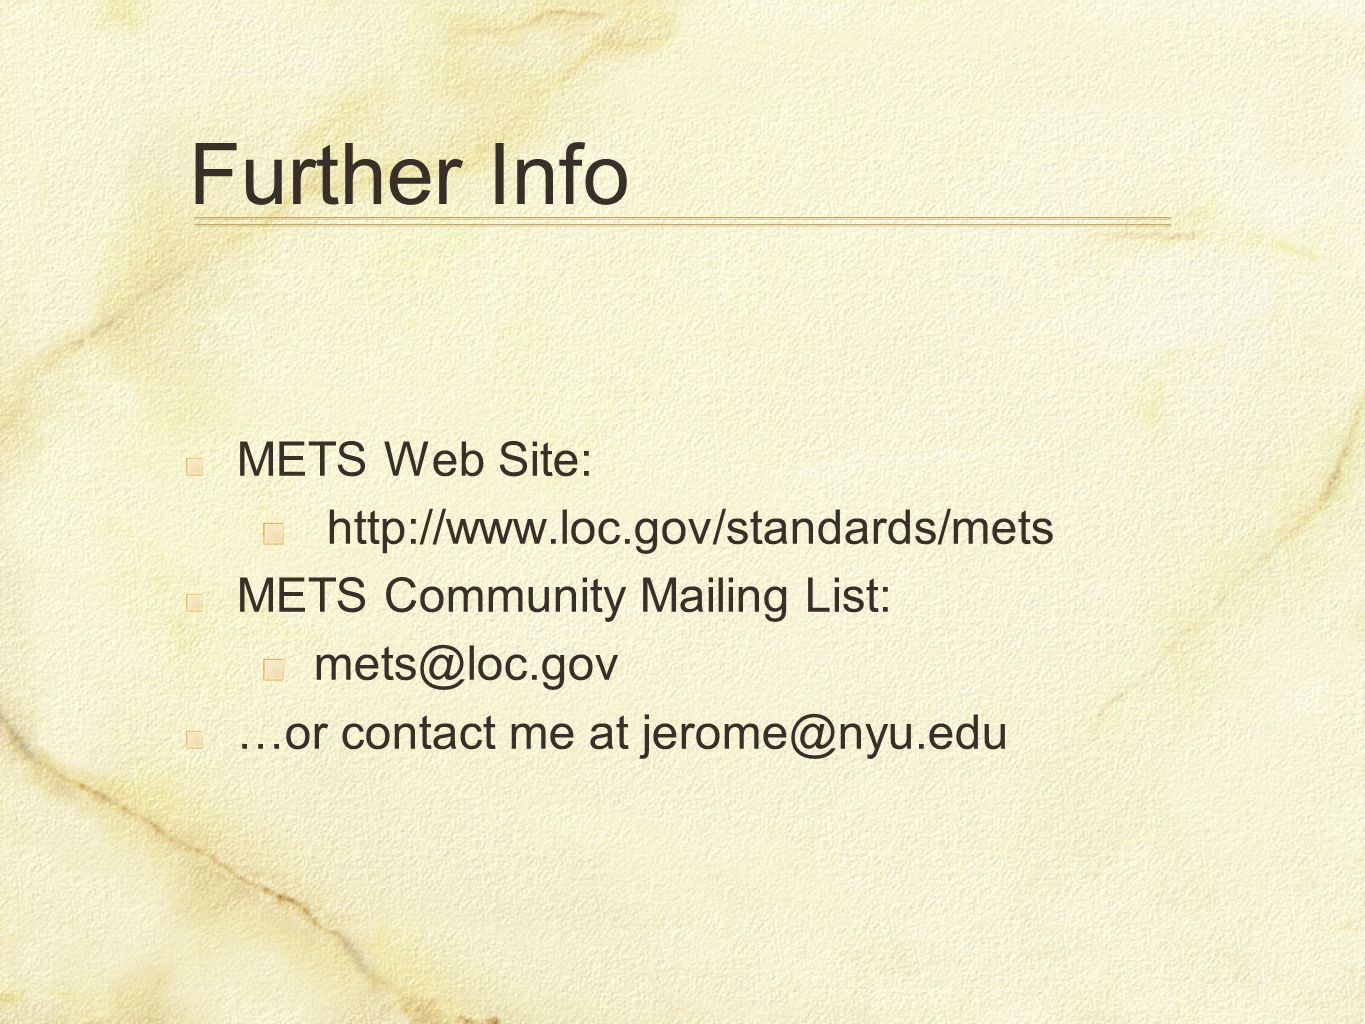 Further Info METS Web Site: http://www.loc.gov/standards/mets METS Community Mailing List: mets@loc.gov …or contact me at jerome@nyu.edu